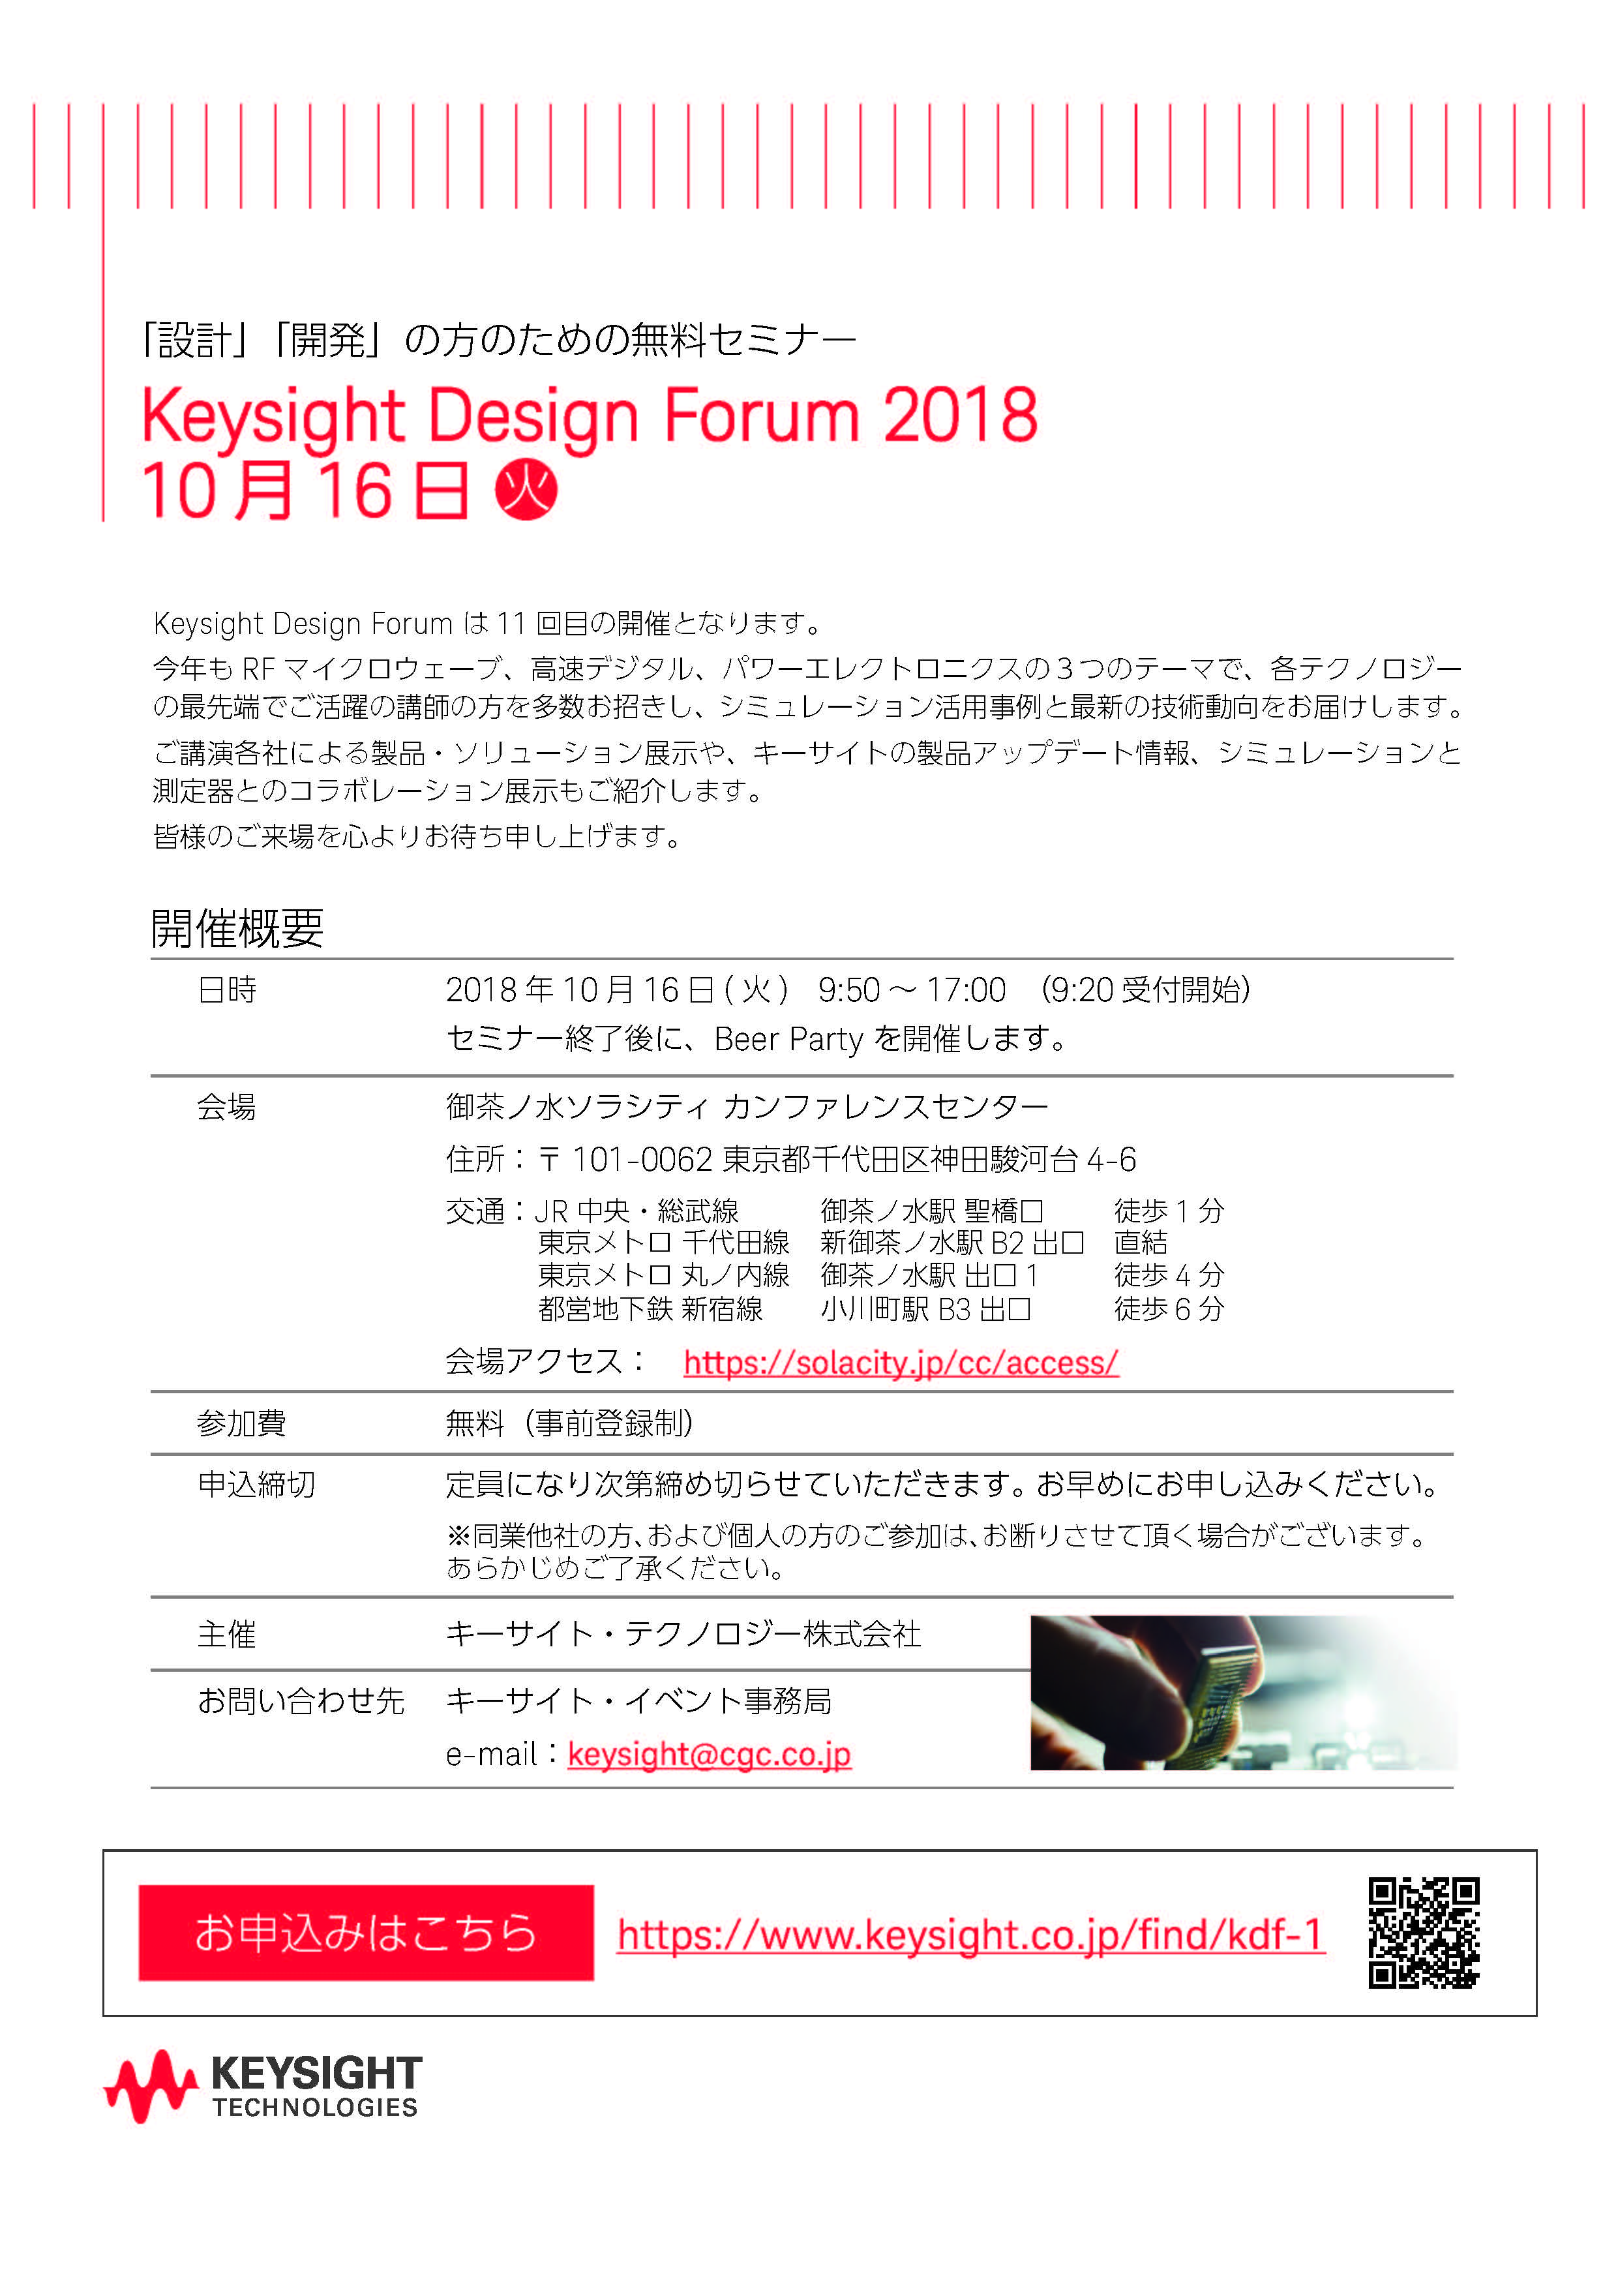 Keysight Design Forum2018出展